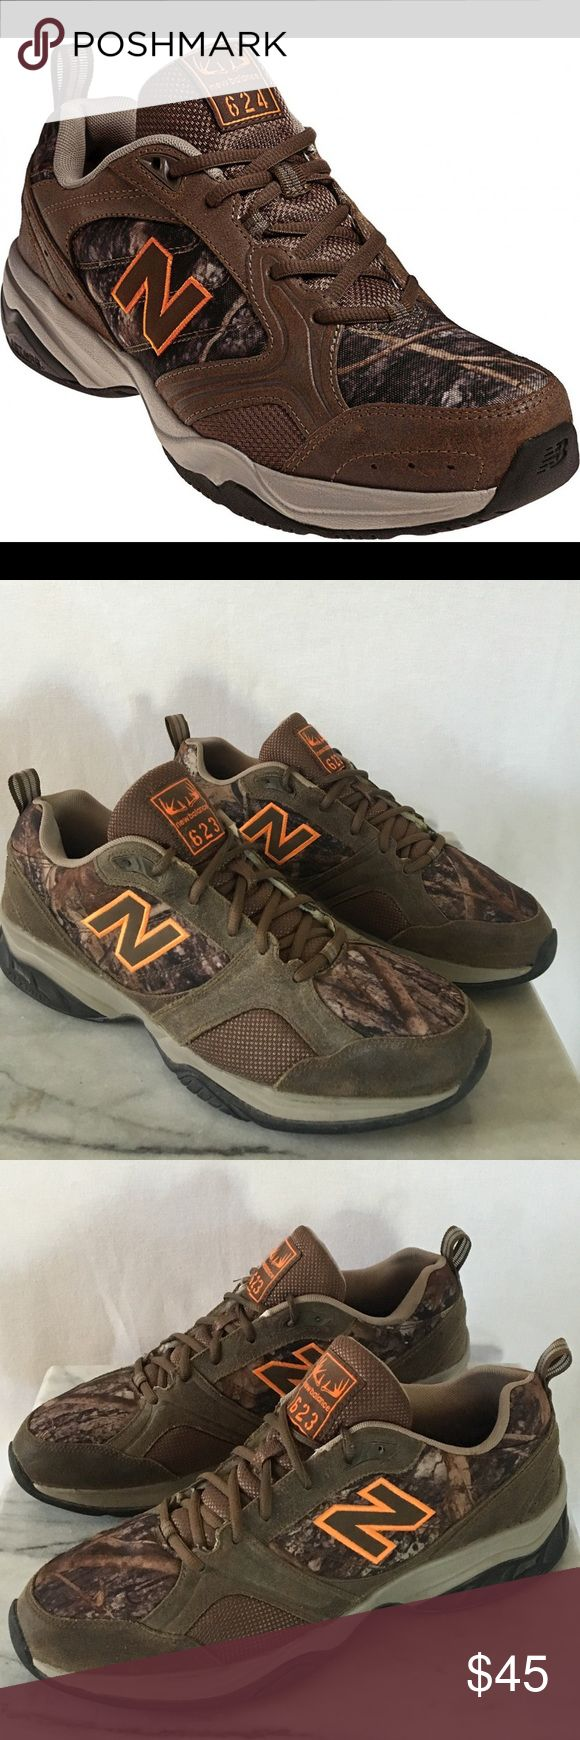 """New Balance 623 New Balance 623 cross trainer. These appear to have hardly been worn as they look absolutely brand new. No original insoles, but they have aftermarket insoles called Footbalance, which are $30-40 insoles. Brown leather upper and orange logo with a great """"forest woods"""" canvas print shell. These cross trainers would be great for an outdoorsman or a hunter/fisherman. Sz 12D. Thanks! New Balance Shoes Athletic Shoes"""